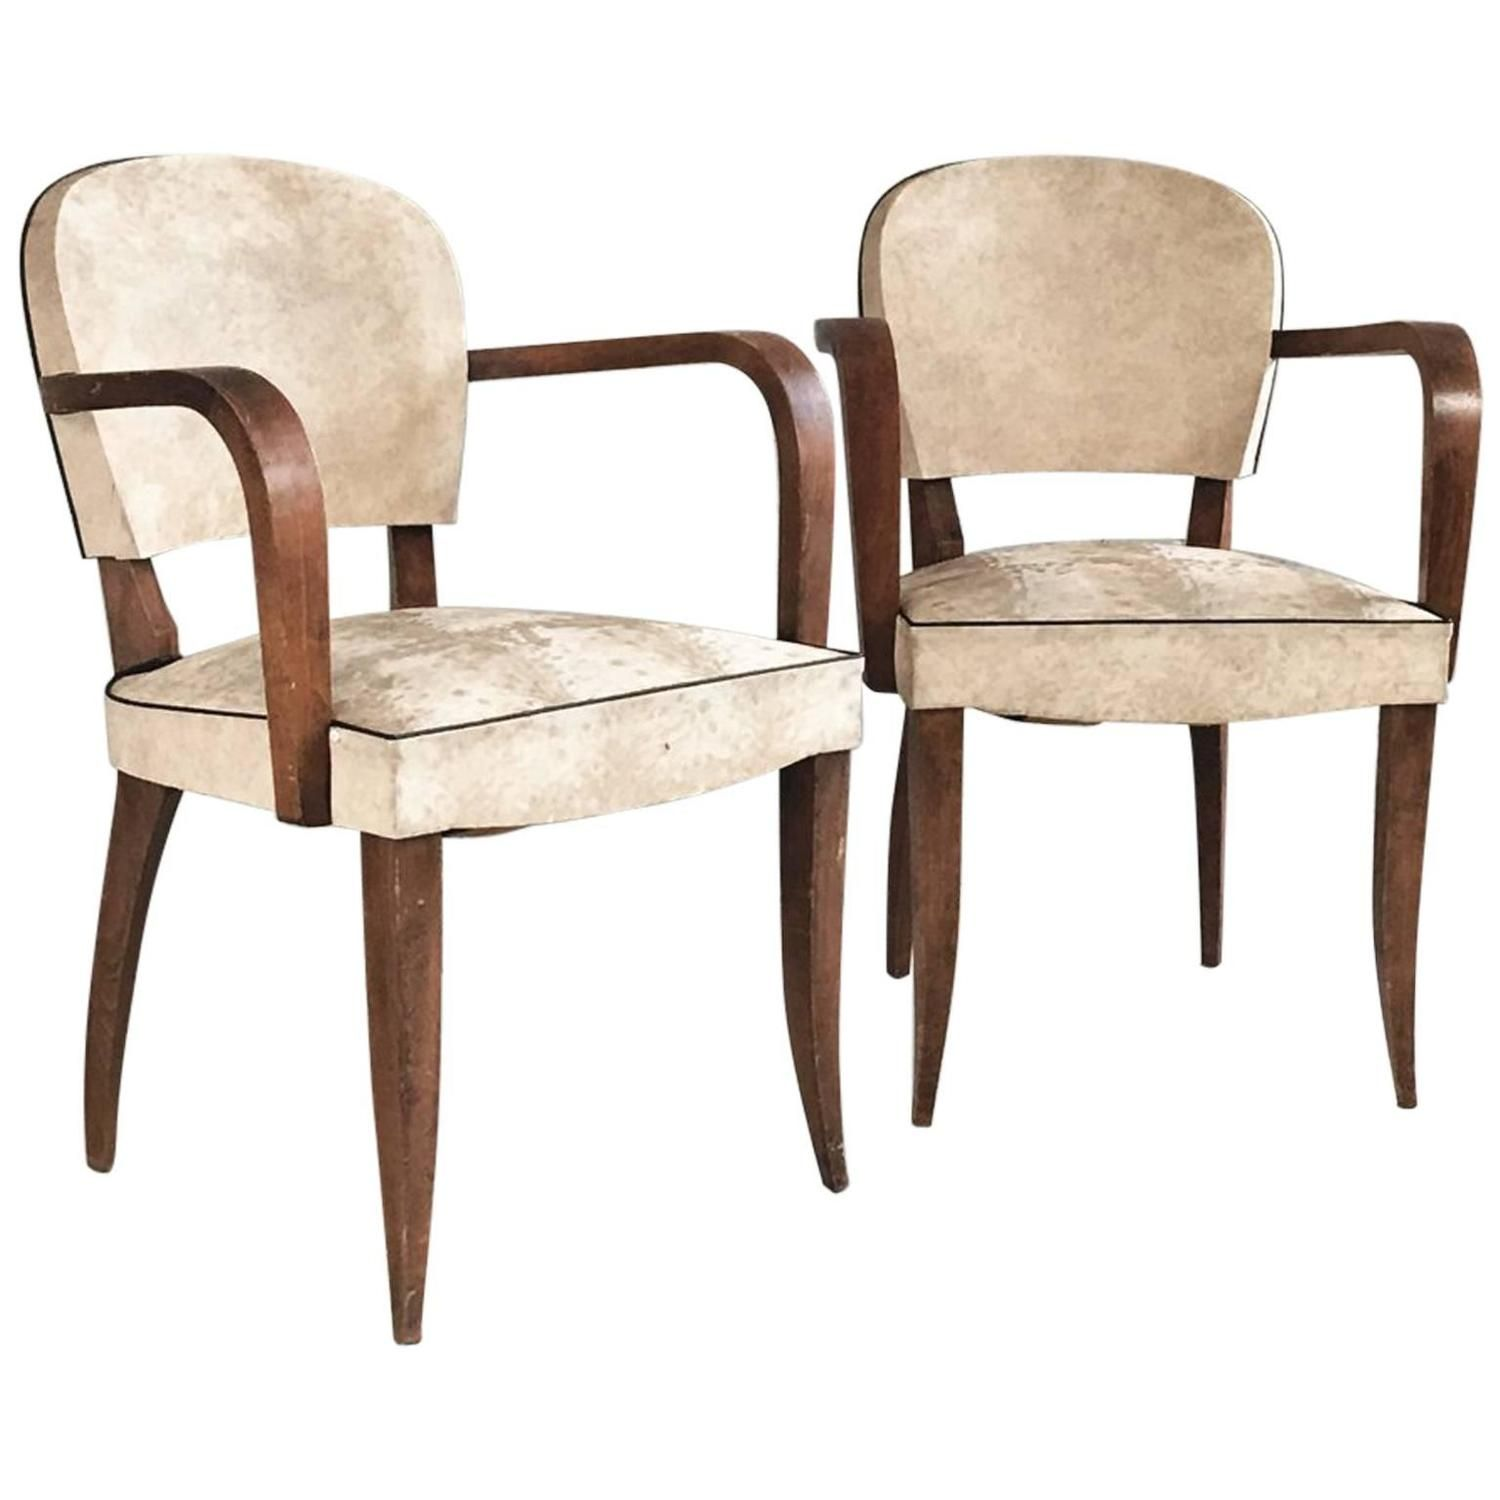 Pair of 1960s Mid Century Belgian White Vinyl Chairs with Sculpted